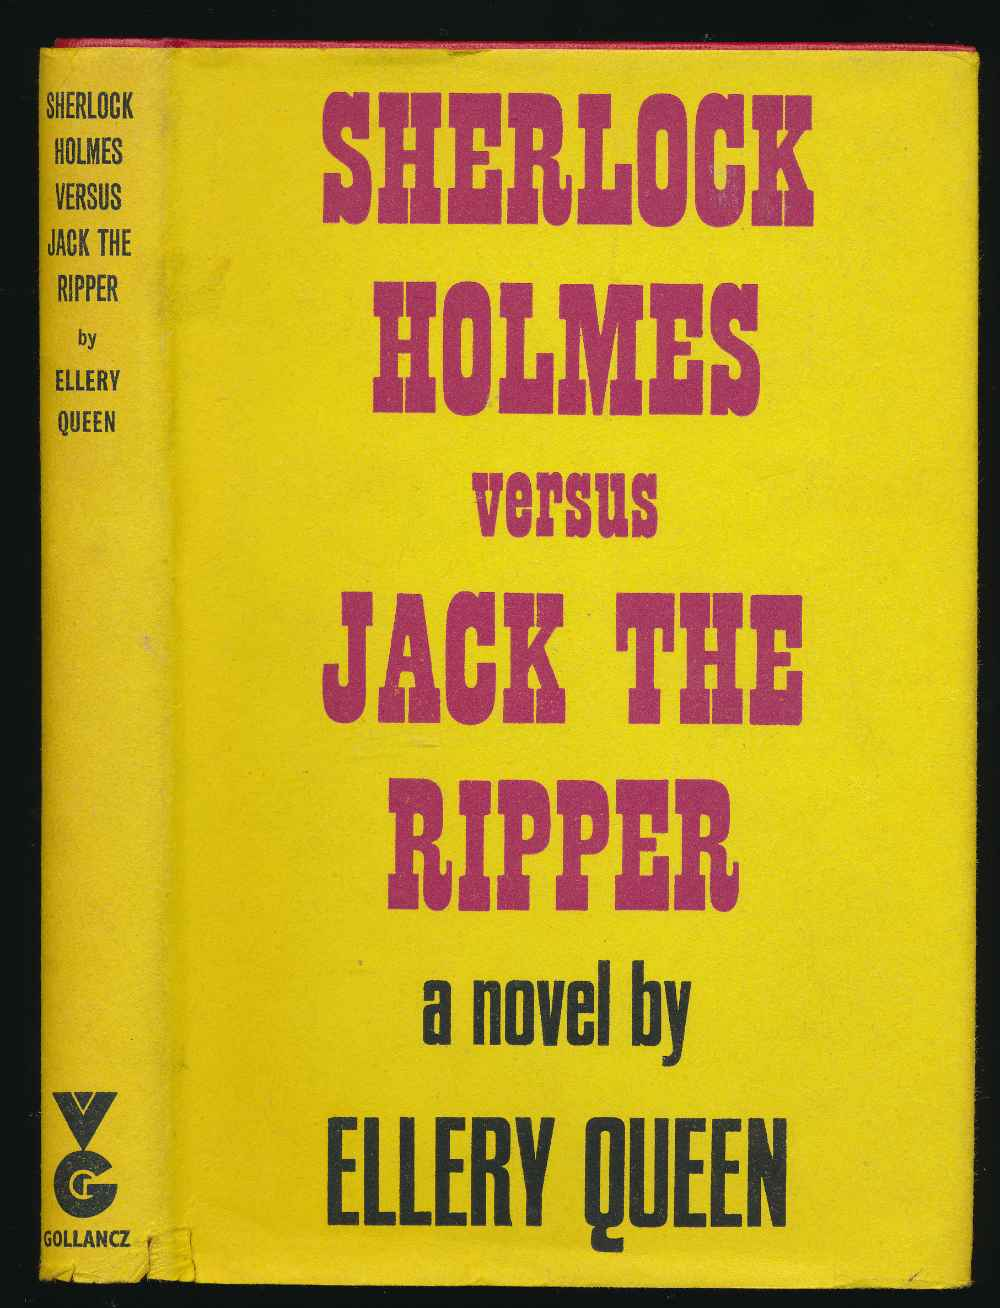 Sherlock Holmes versus Jack the Ripper: a novel